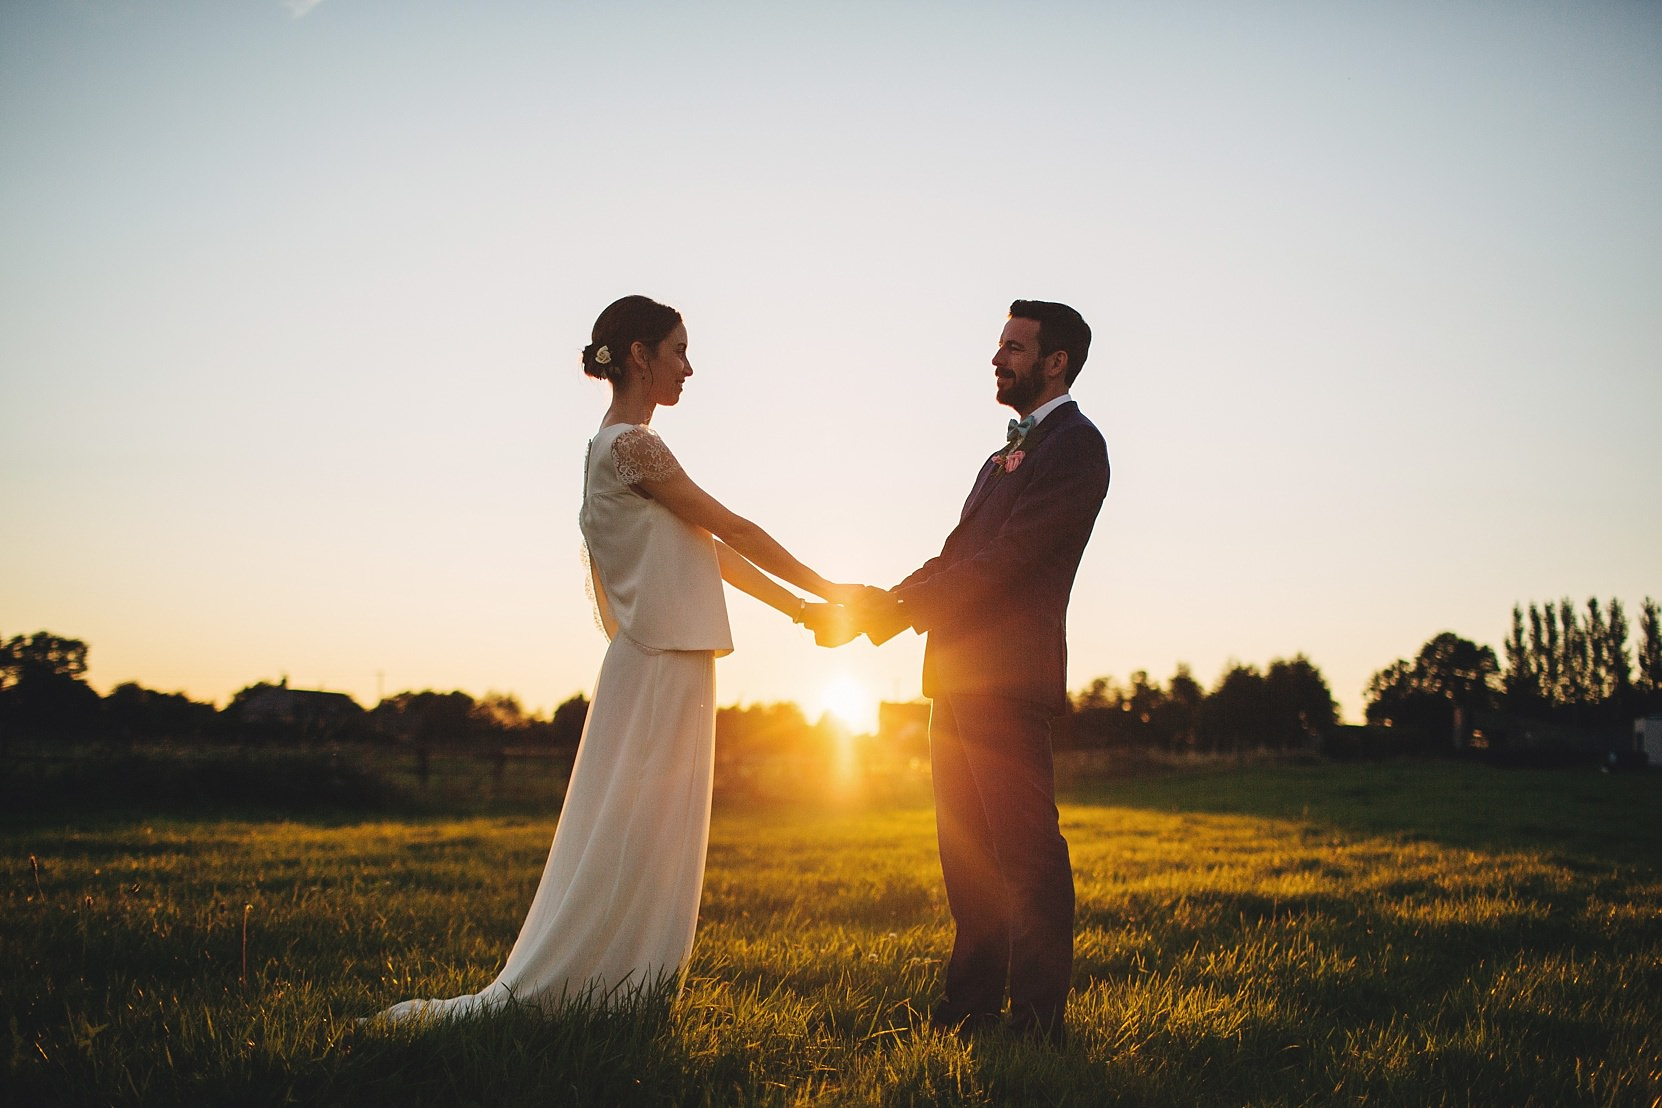 Beautiful shots of a bride and groom at sunset in a field